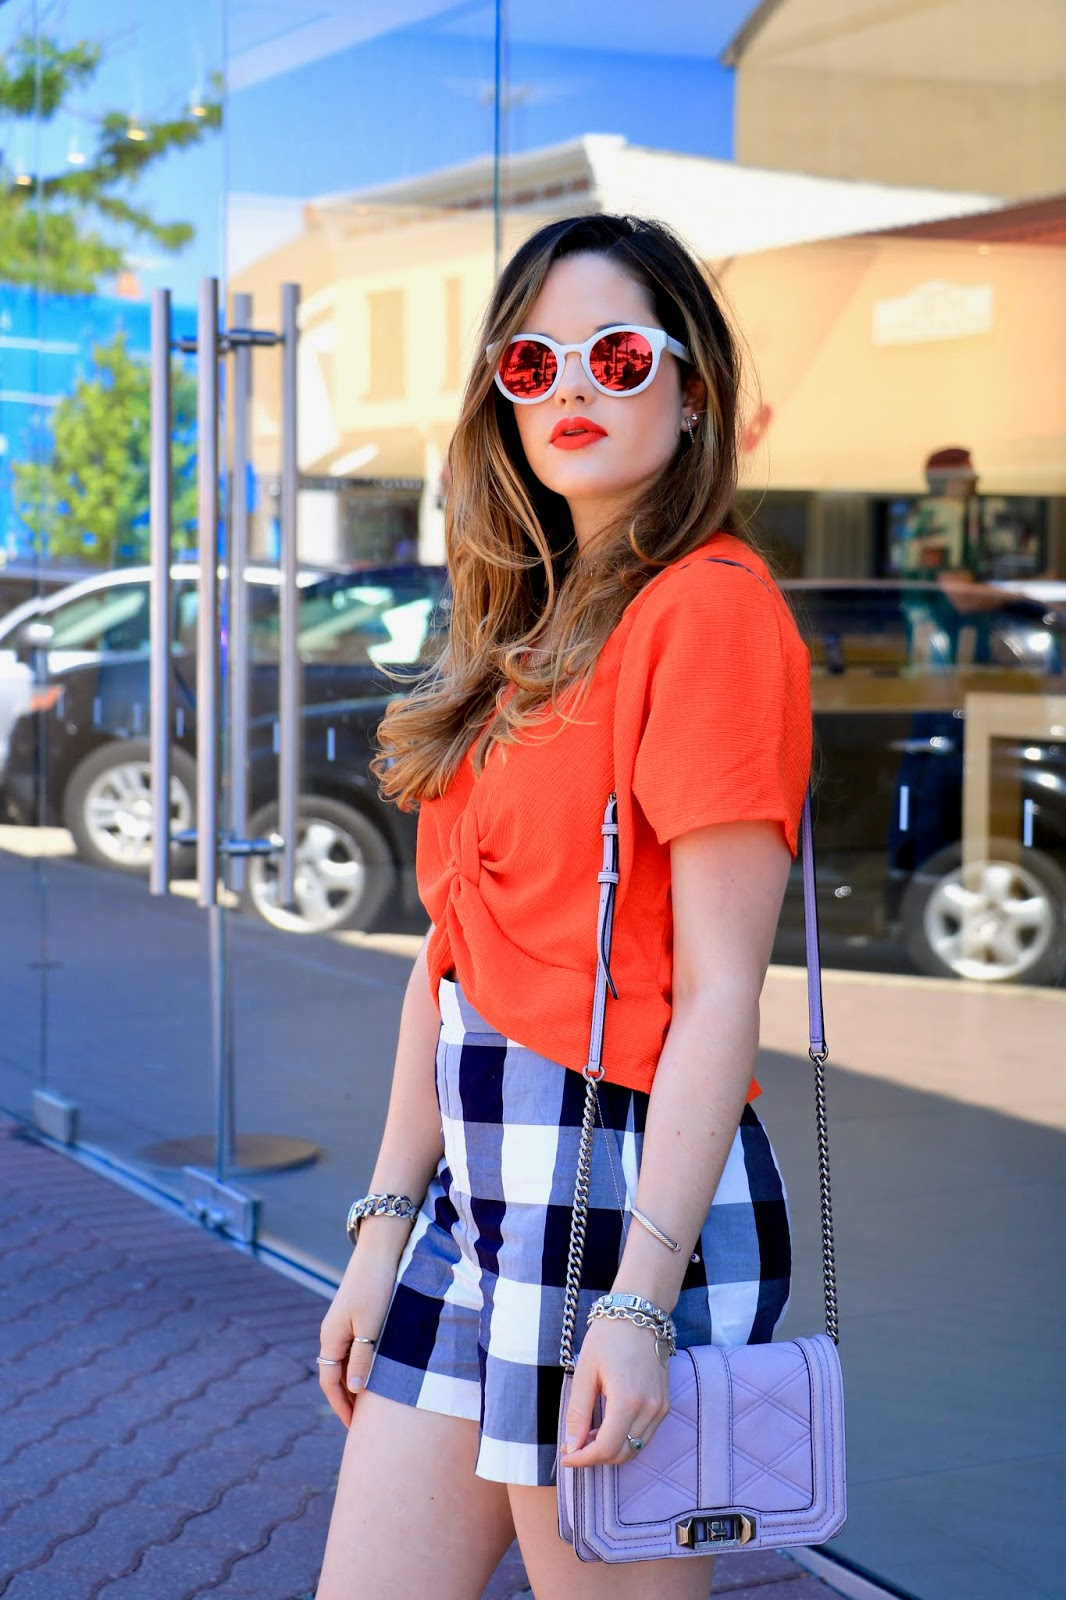 Nyc fashion blogger of Kat's Fashion Fix, Kathleen Harper, wearing orange twist top and plaid shorts